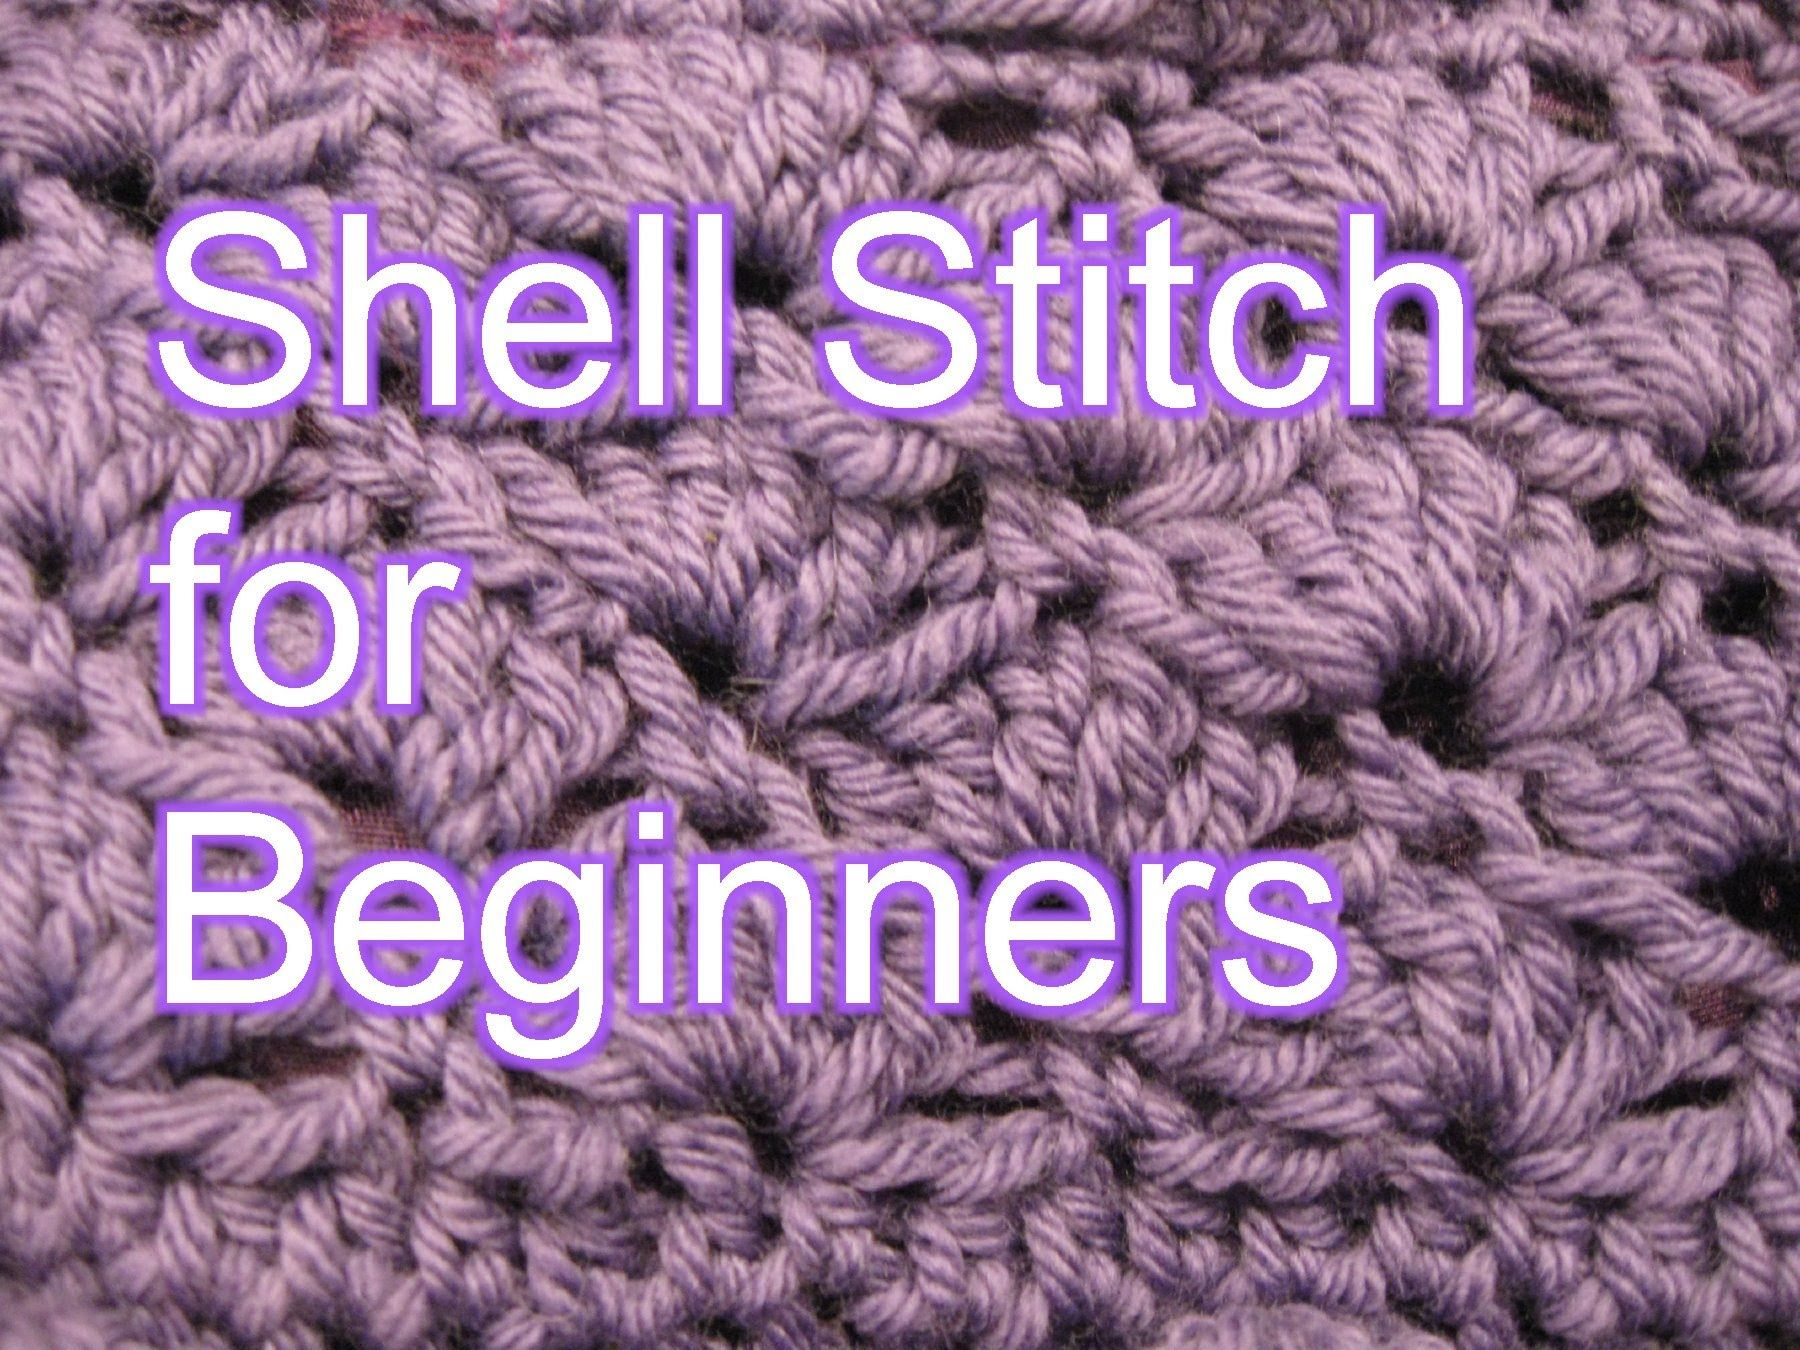 Knitting Stitch Shell : Crochet Shell Stitch For Beginners If you enjoyed this article please share a...